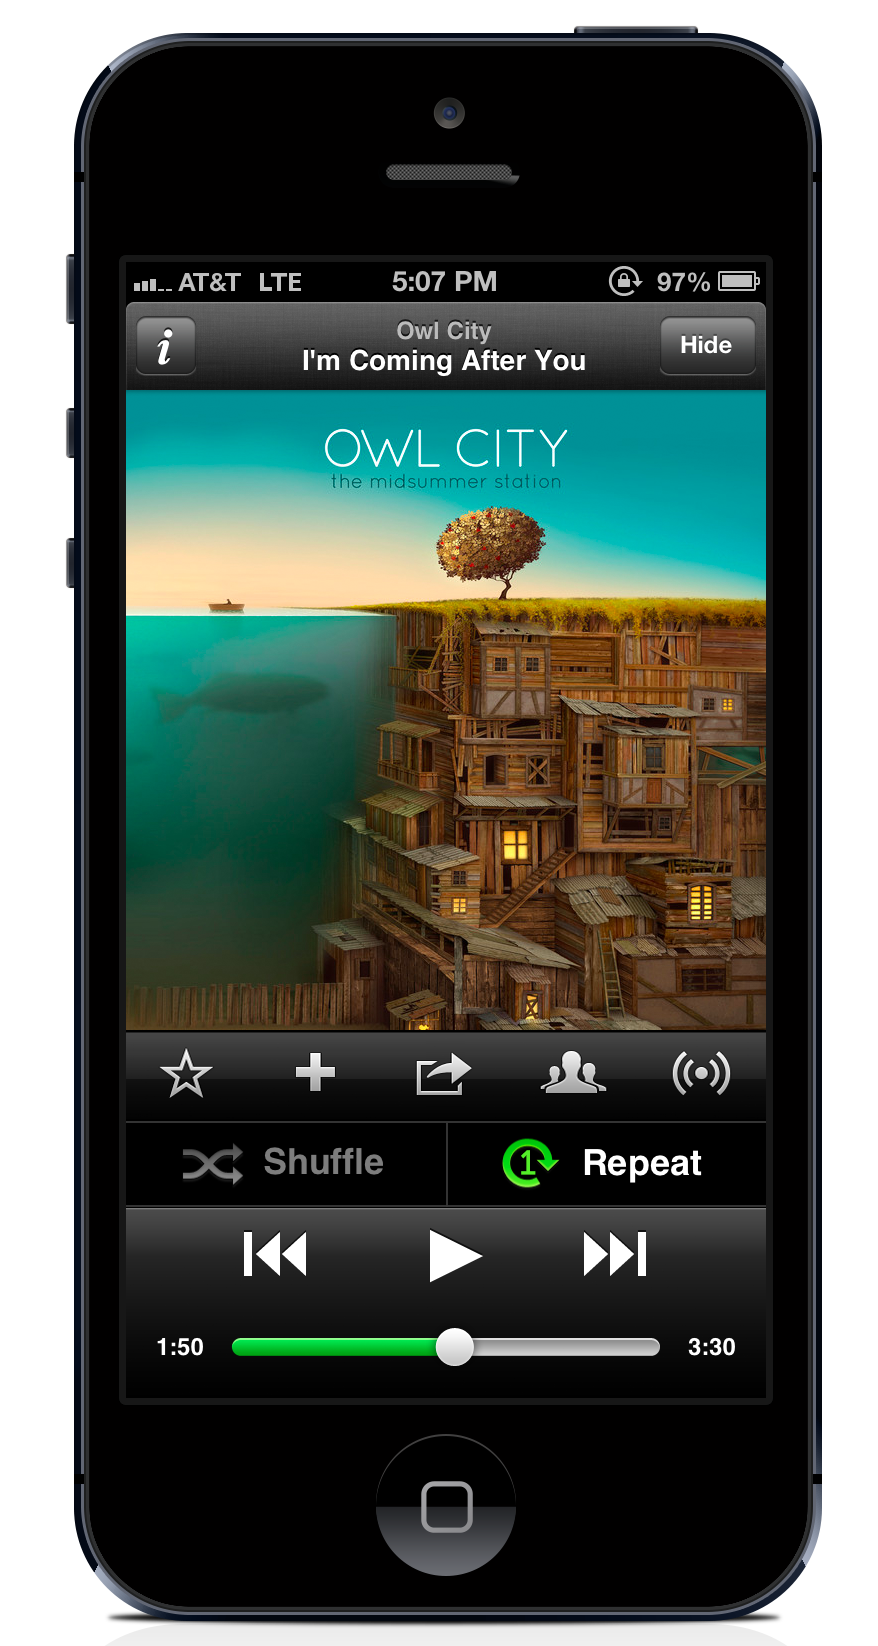 Update iOS App for Bigger iPhone 5 Screen - The Spotify ... - Spotify iPhone Icon